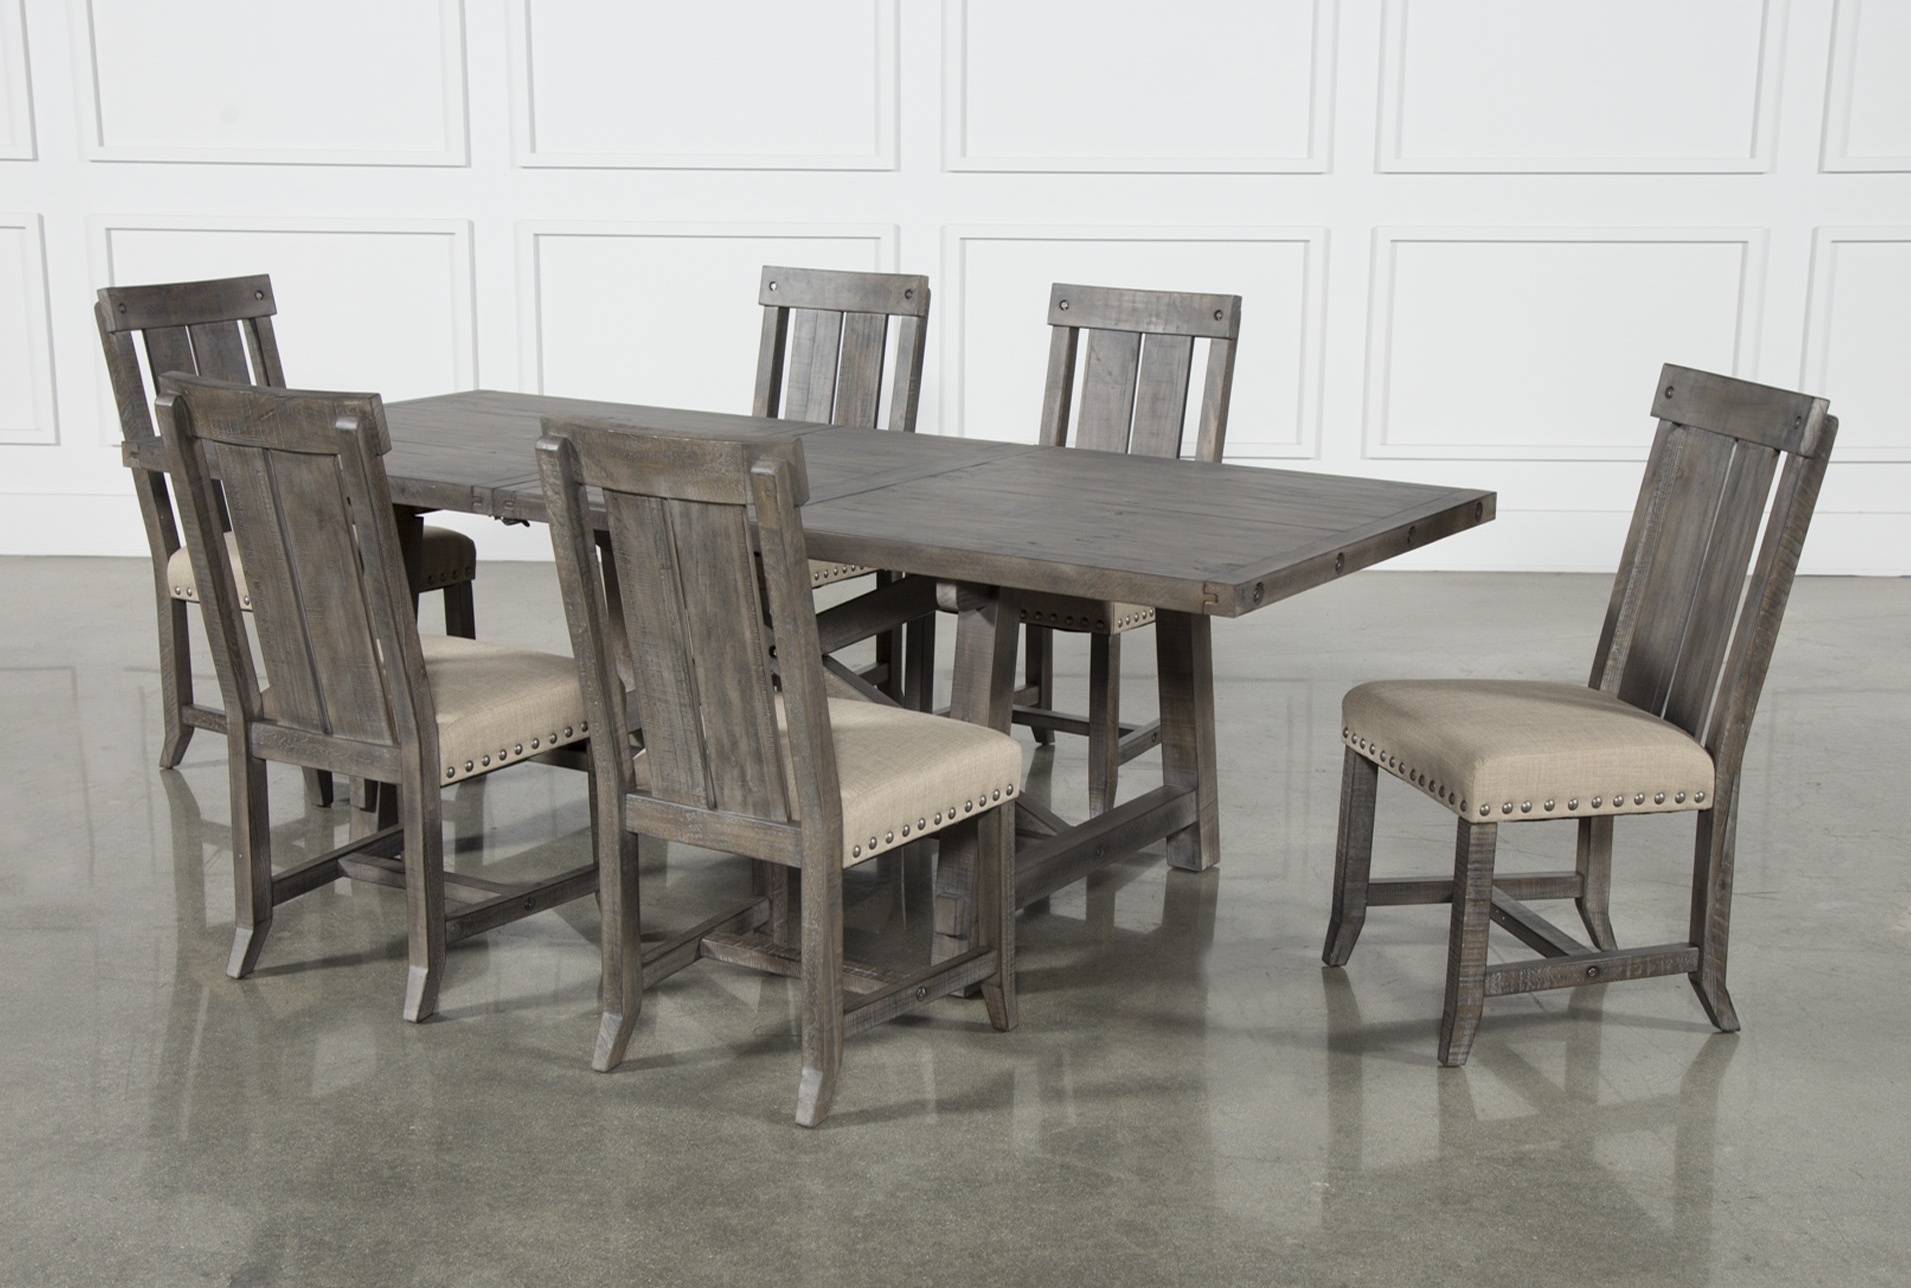 Jaxon Grey 7 Piece Rectangle Extension Dining Set W/wood Chairs With Regard To Most Recently Released Jaxon Grey Rectangle Extension Dining Tables (Gallery 4 of 25)